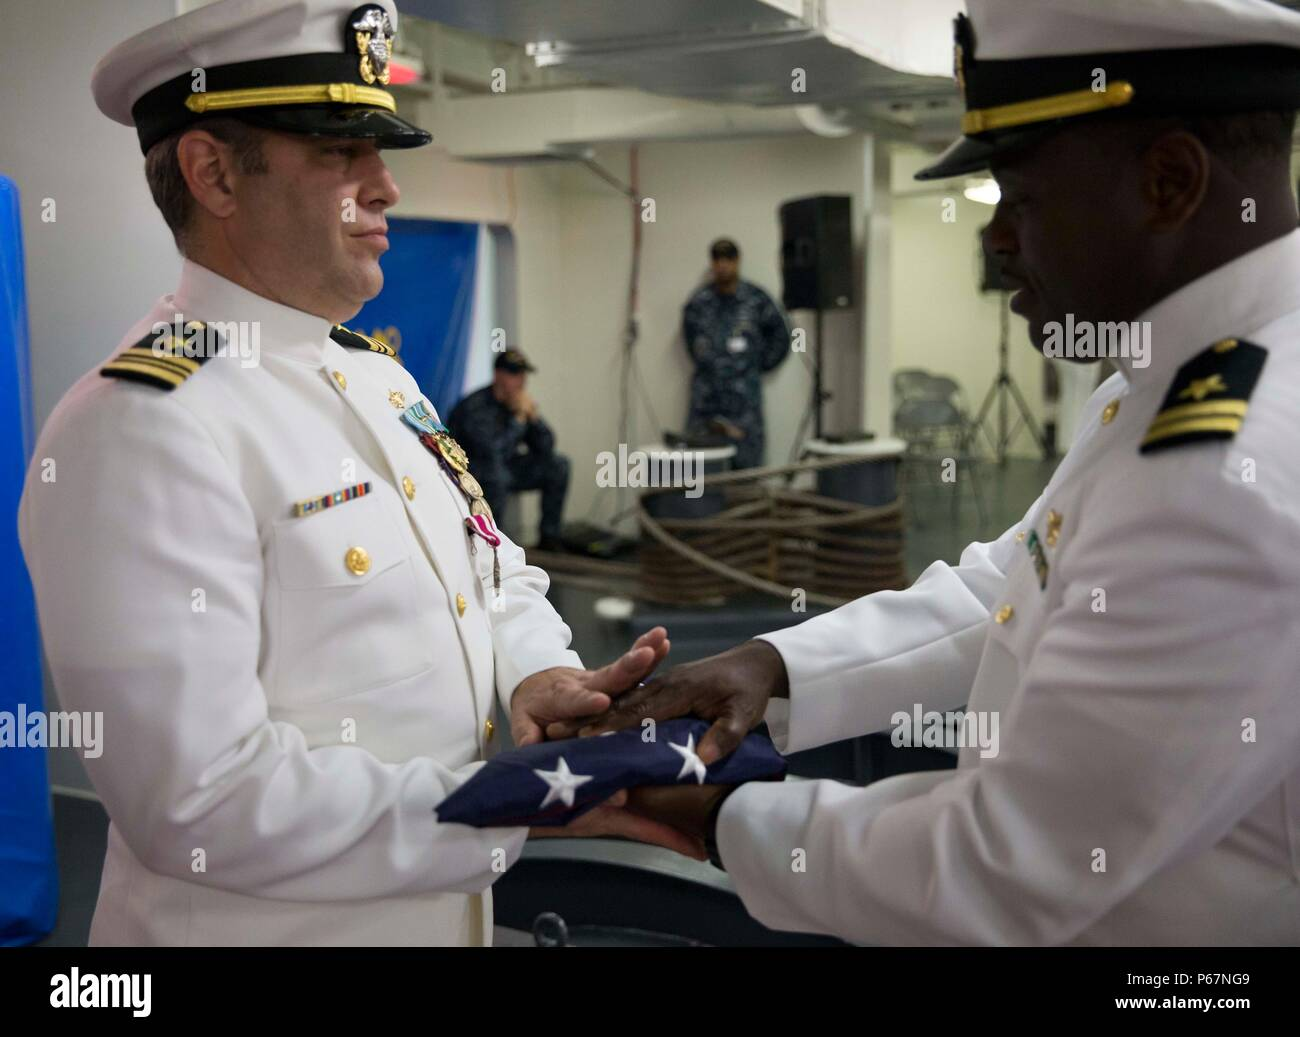 NEWPORT NEWS, Va. (May 13, 2016) – Lt. Cmdr. Michael Stone, assigned to Pre-Commissioning Unit Gerald R. Ford (CVN 78), is presented with the national ensign during his retirement ceremony in the ship's forecastle. Ford is the first of a new class of aircraft carriers currently under construction by Huntington Ingalls Industries Newport News Shipbuilding. (U.S. Navy photo by Mass Communication Specialist Seaman Apprentice Connor Loessin/Released) - Stock Image